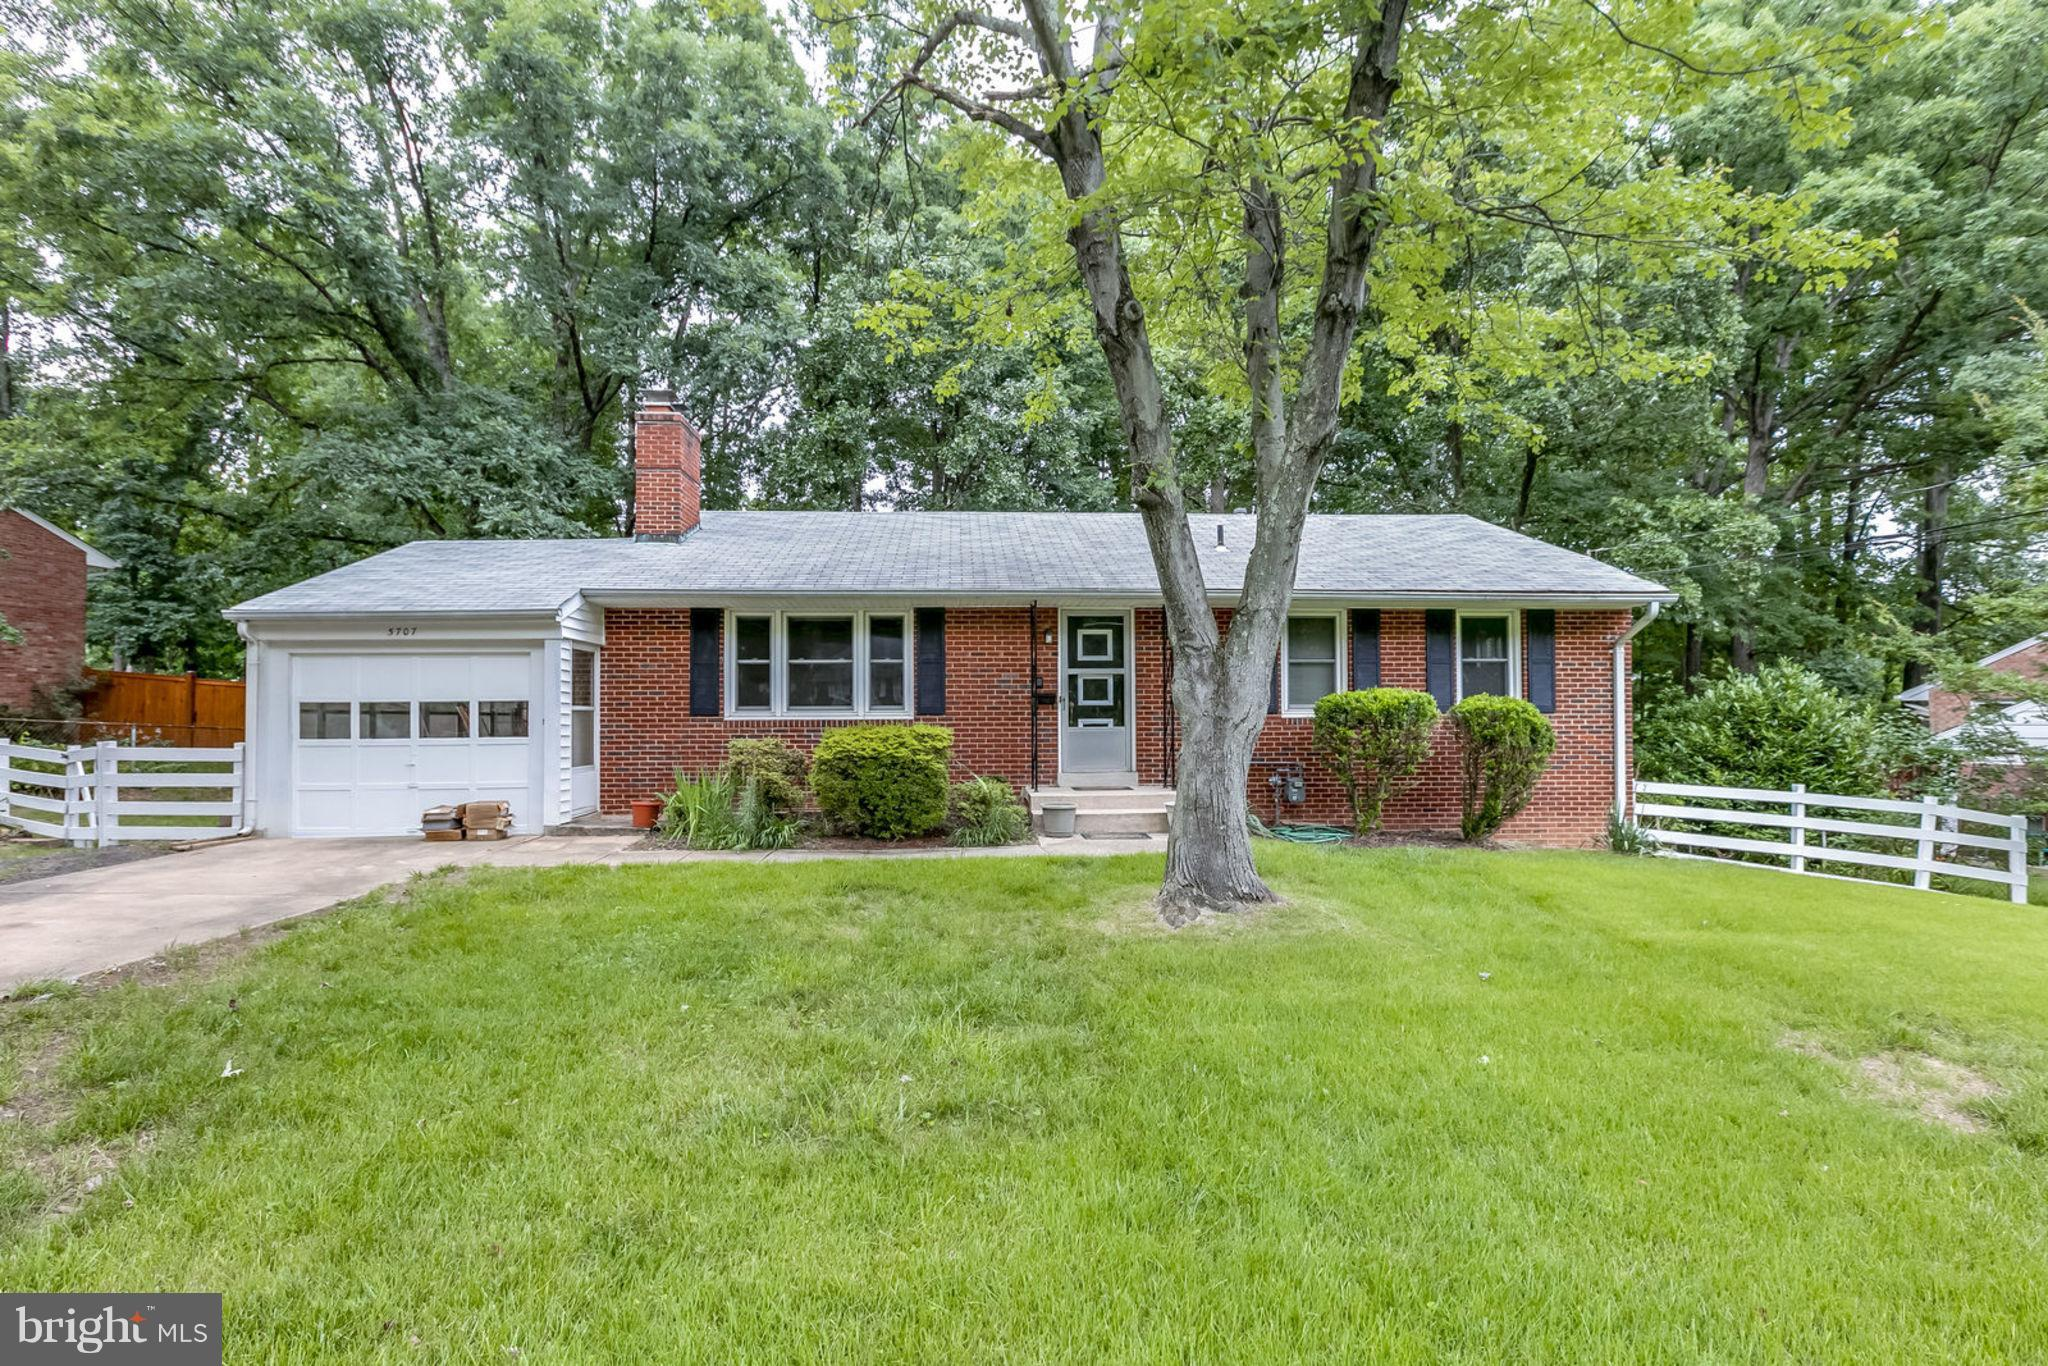 Priced to sell! All brick 4BR 3BA rambler w 1 car garage in desirable North Springfield. Great location w easy/immediate access to 495/395/95 & great commuter location to the Pentagon & Fort Belvoir. Minutes to desirable Lake Accotink. Features include updated kitchen, 2 fireplaces, hardwood floors, fully finished basement, freshly painted and new carpet throughout. Minutes to shops & restaurants.